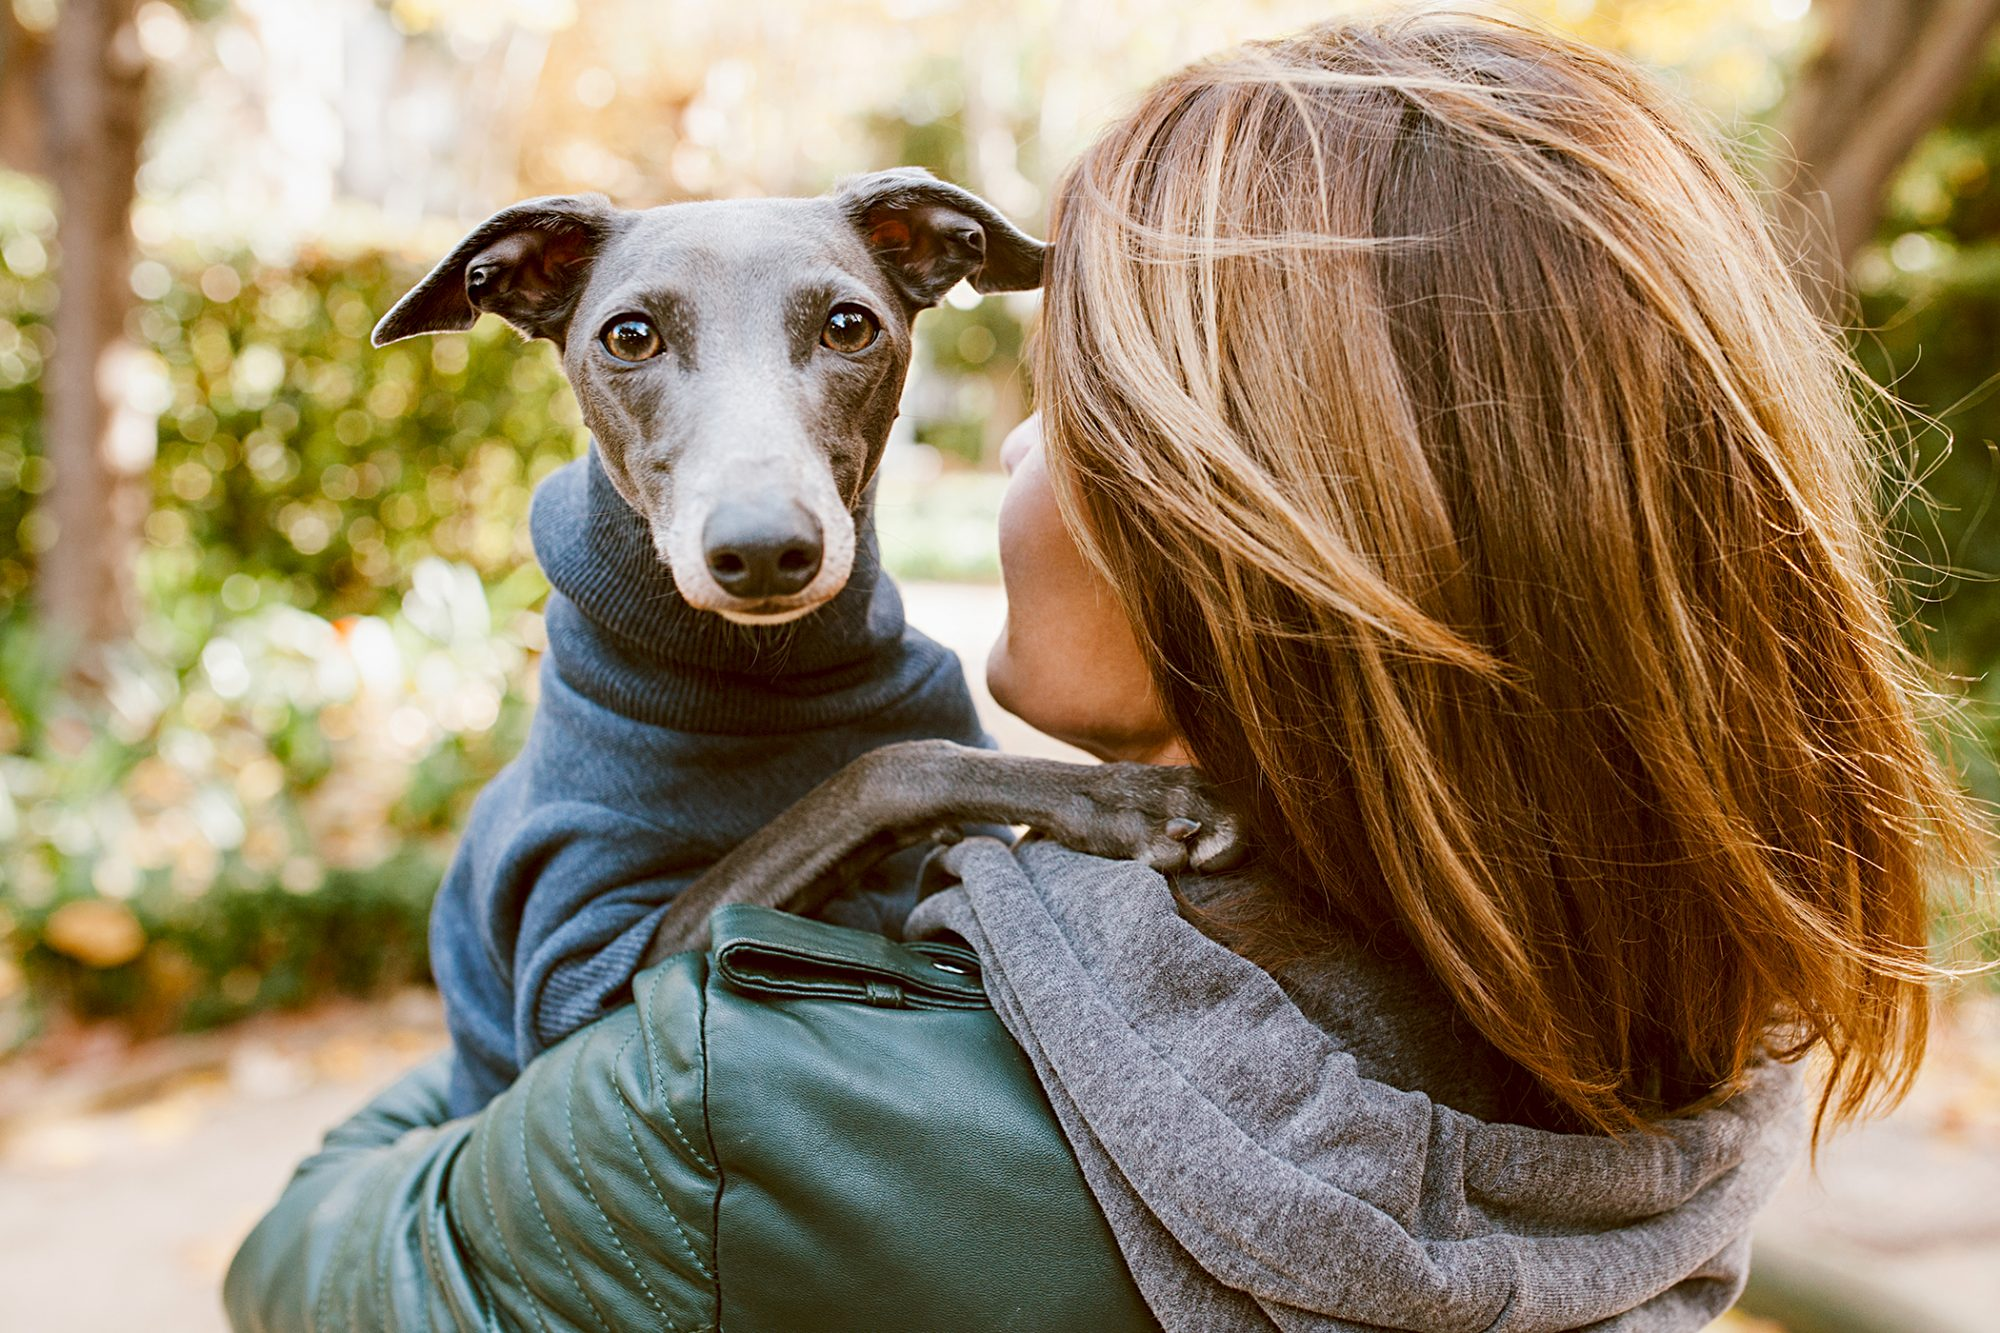 italian greyhound wearing a turtleneck sweater held in a woman's arms outside on a walk